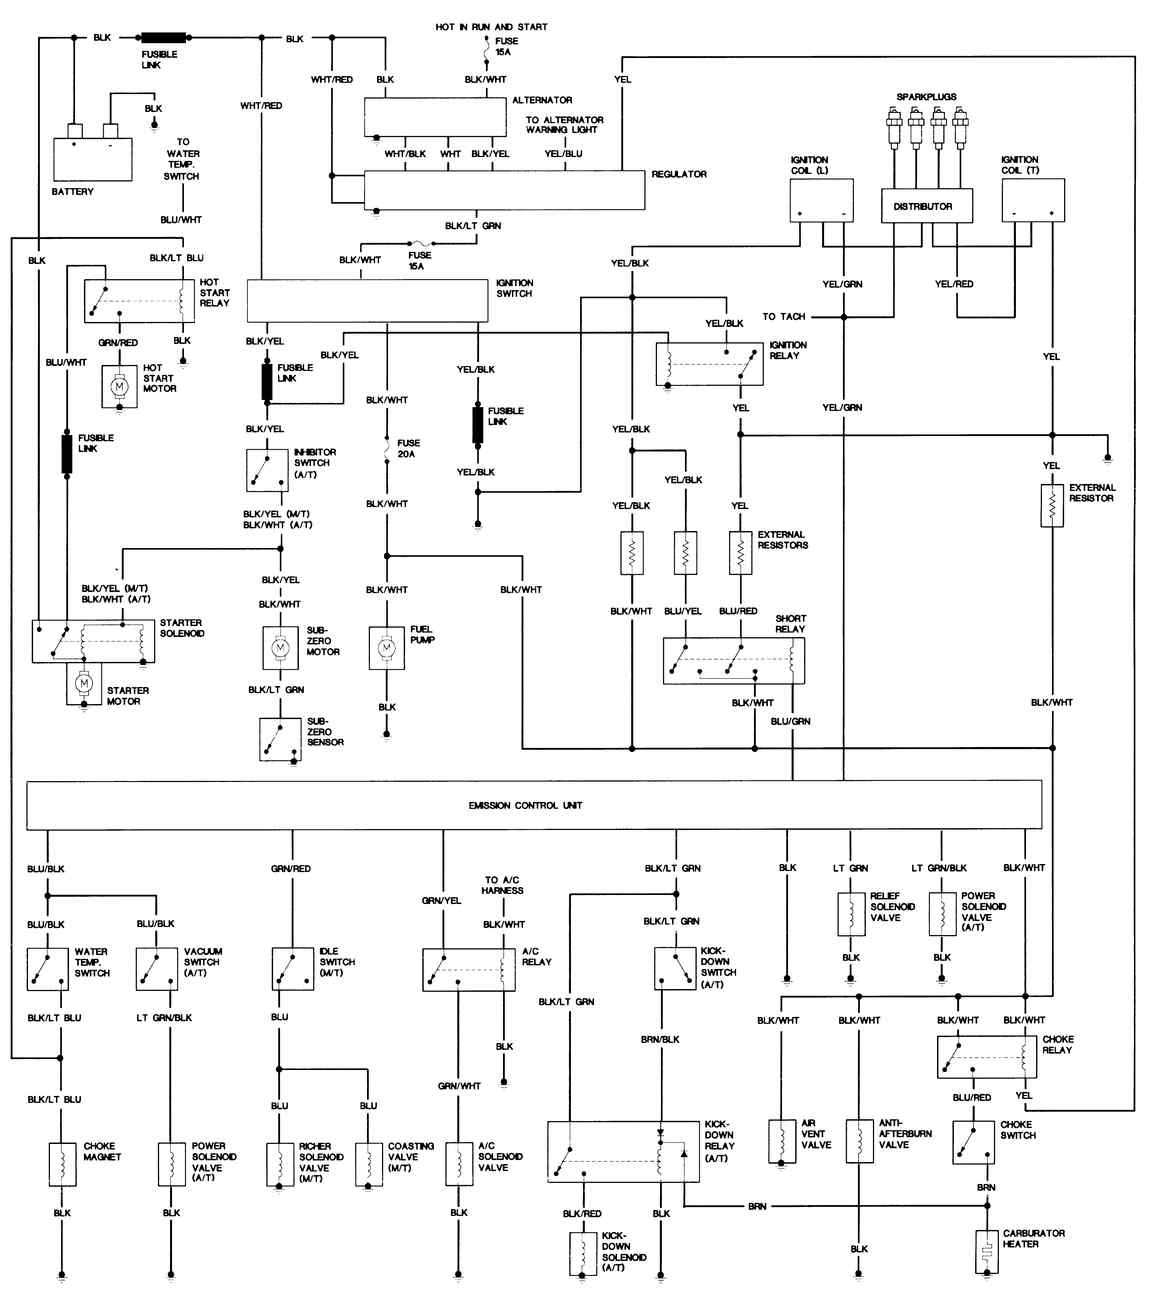 Mazda 323 Gtx Wiring Diagram Great Design Of Gtr Engine 89 Get Free Image About Miata 1988